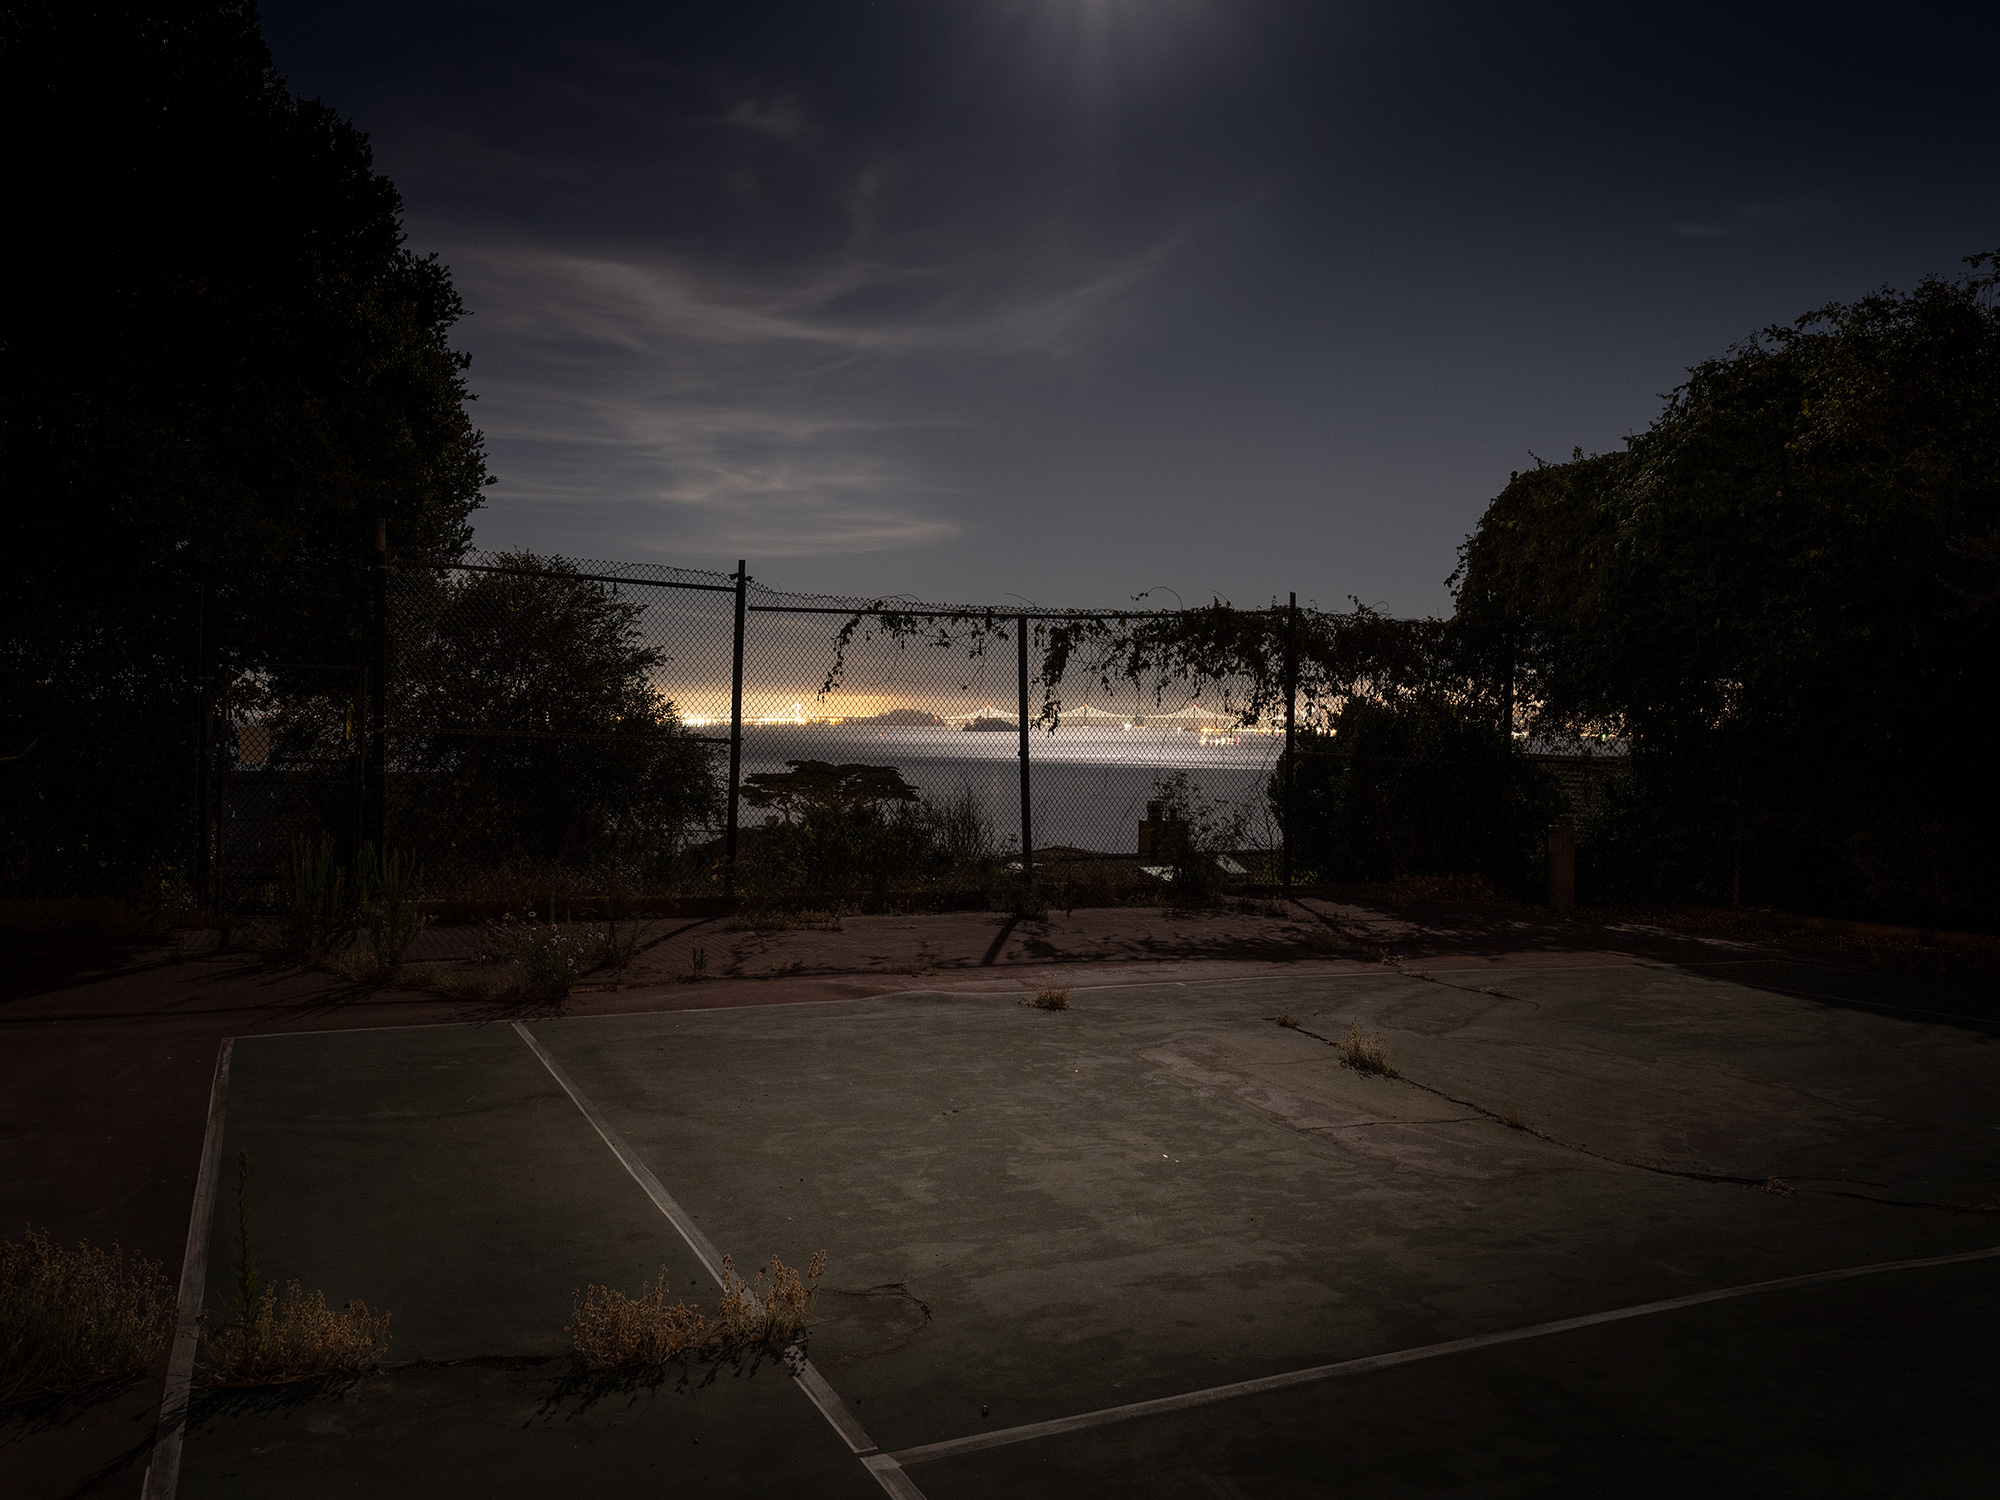 Image of tennis court at night that has been moonlit.